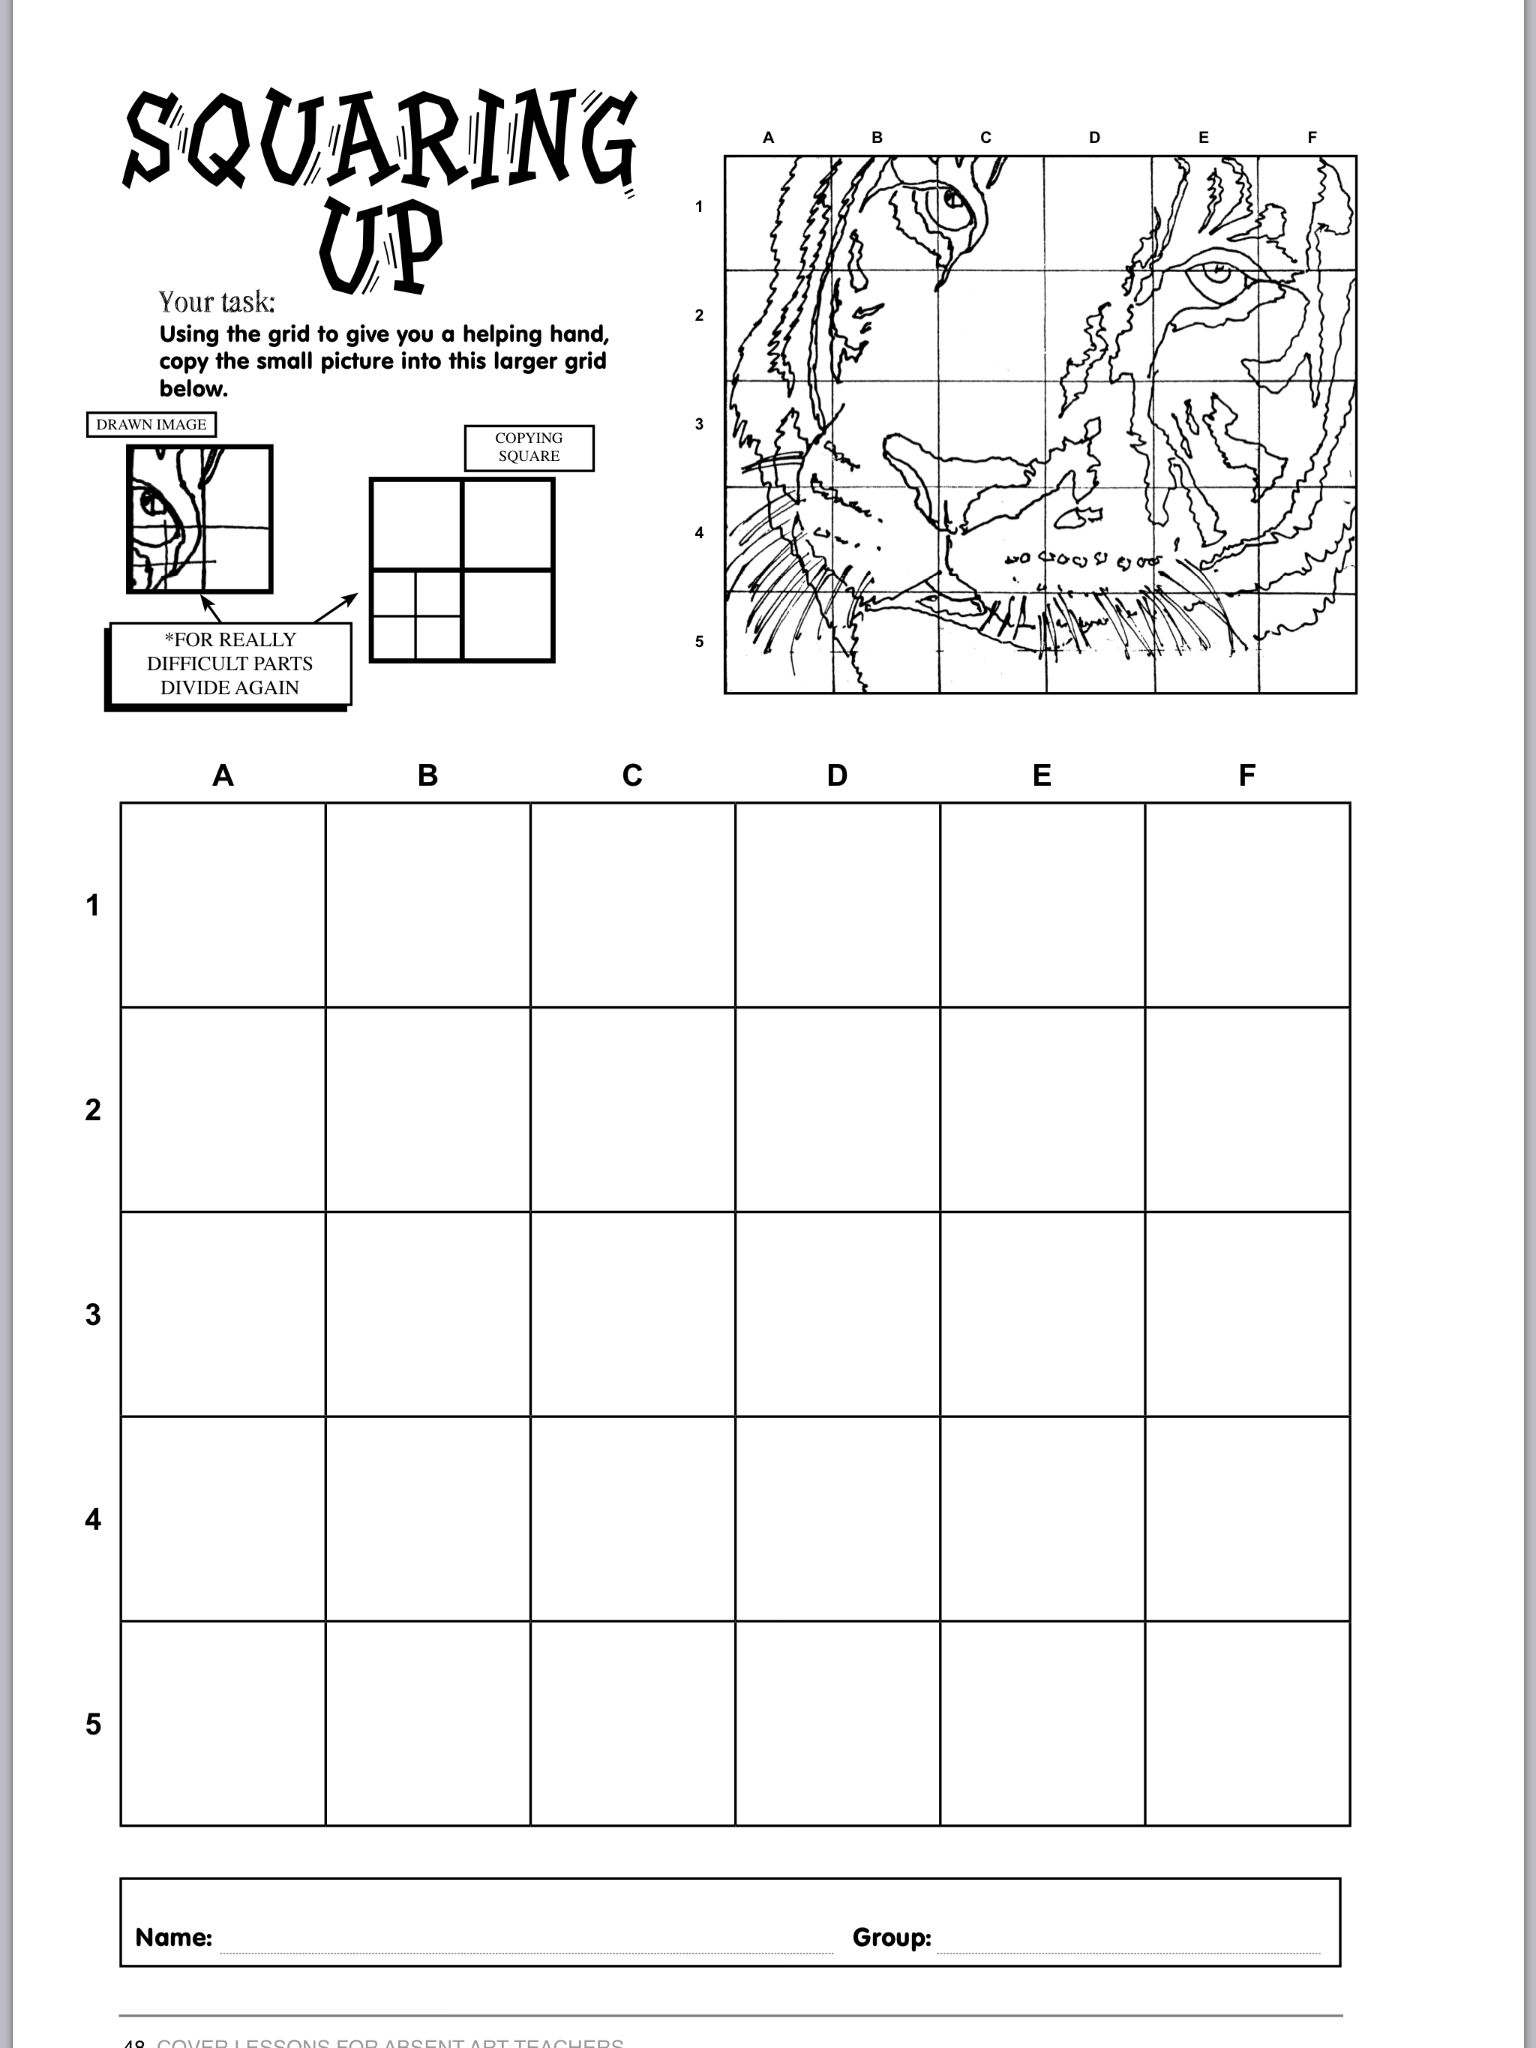 Worksheets Grid Art Worksheets pin by amy bouse on teaching drawing pinterest art lessons squaring up making a grid this is an excellent tool to practice lines and learning how shade sometimes in class we